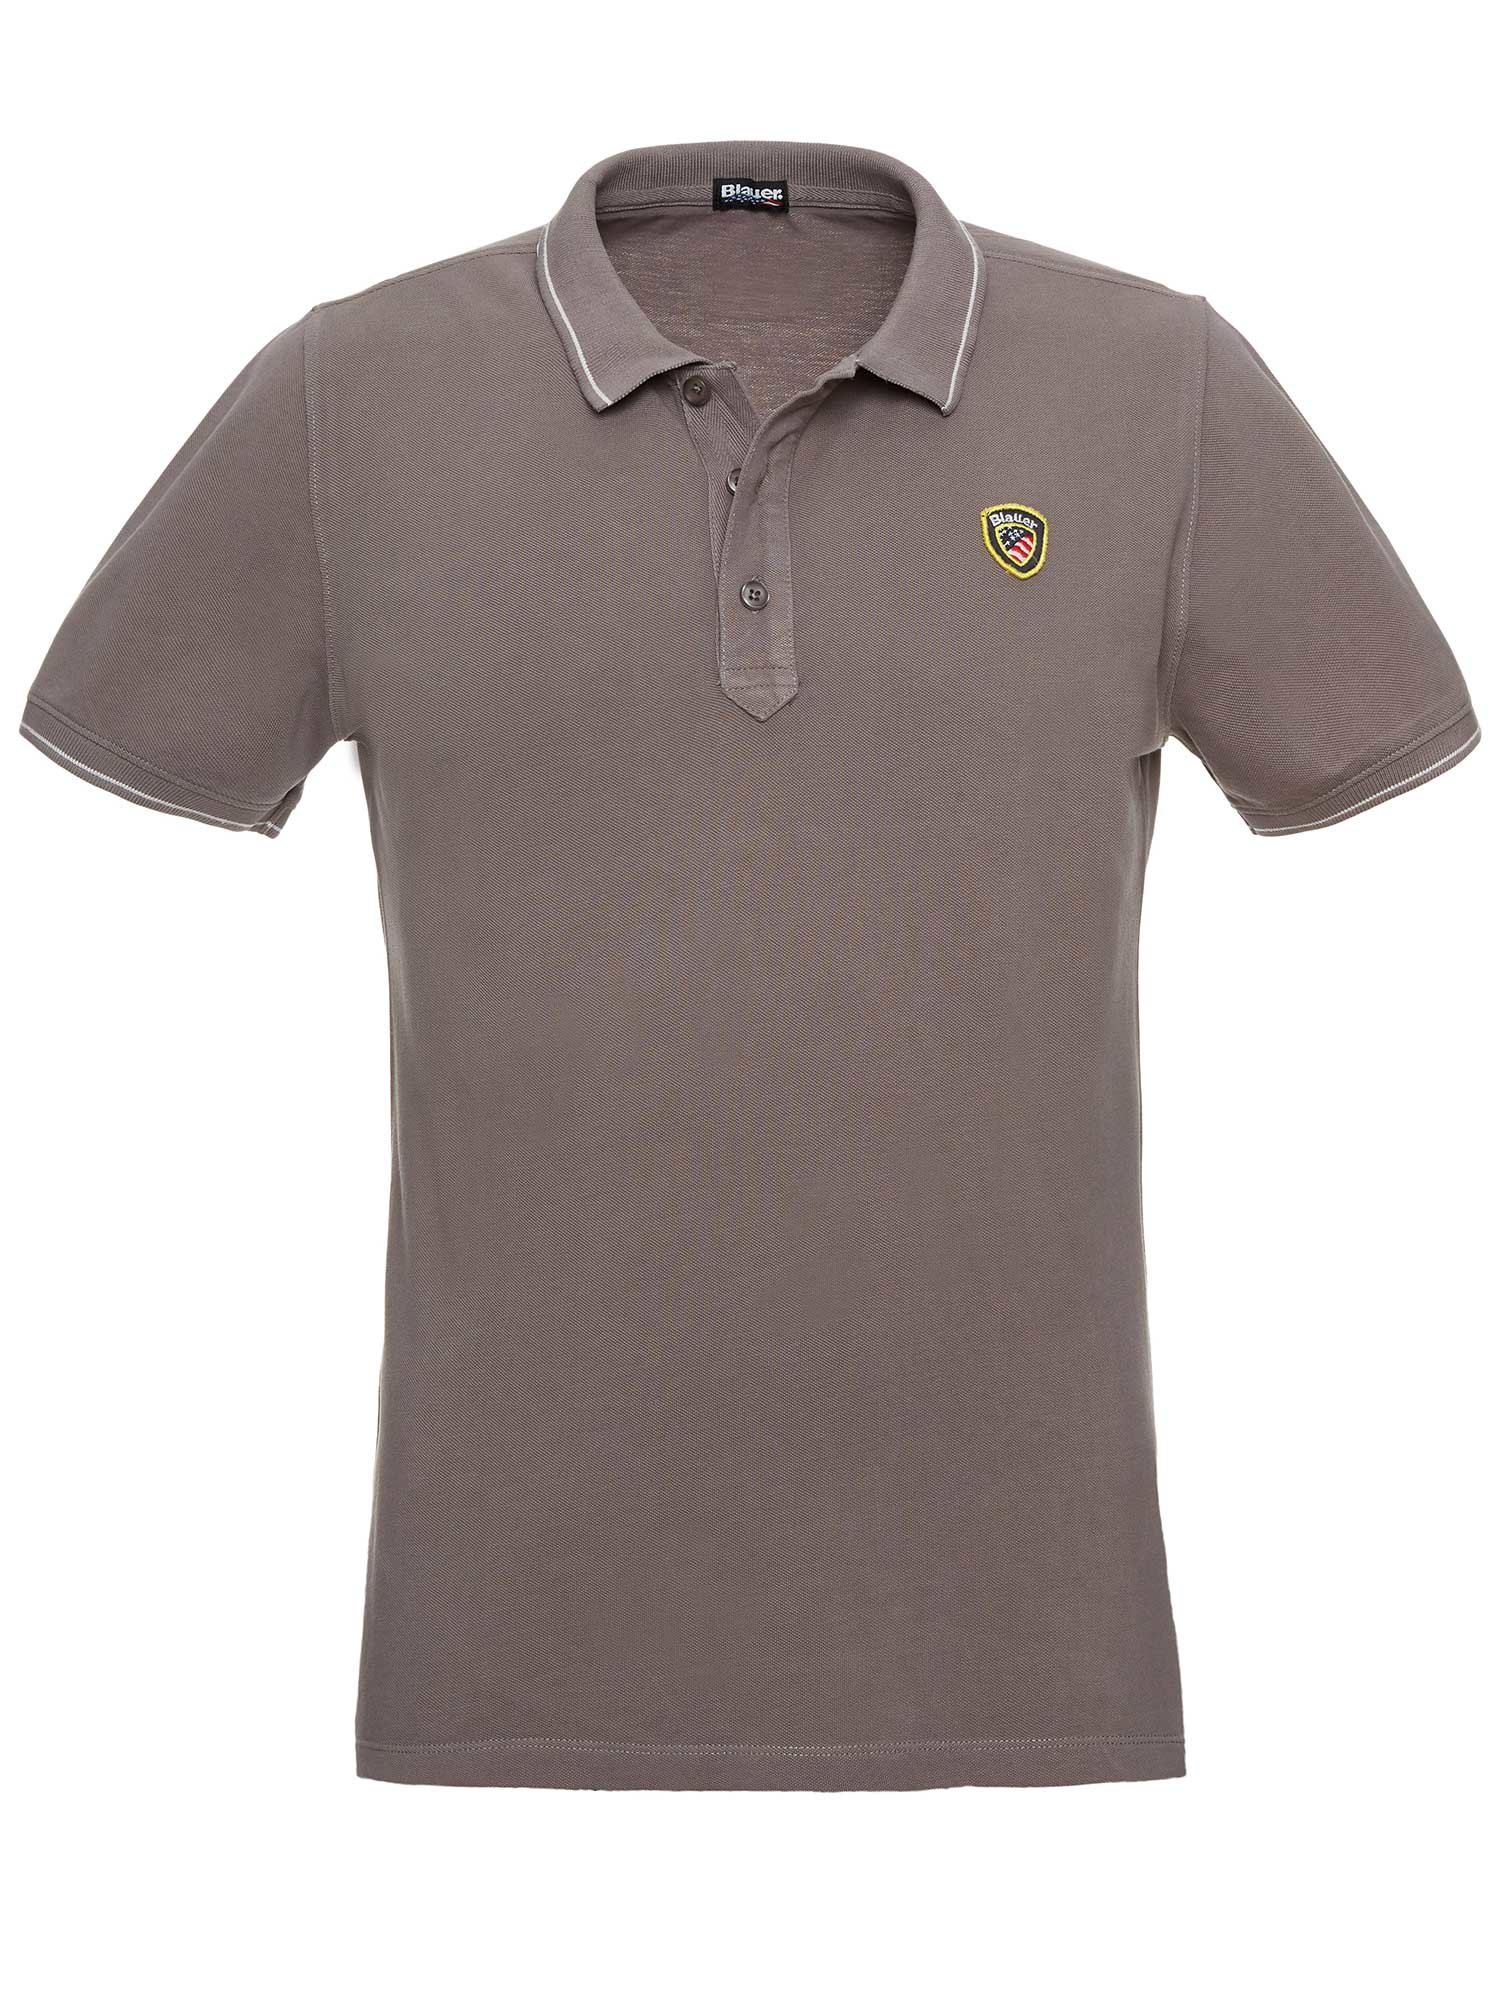 PIQUE POLO SHIRT WITH STRIPED RIBBING - Blauer